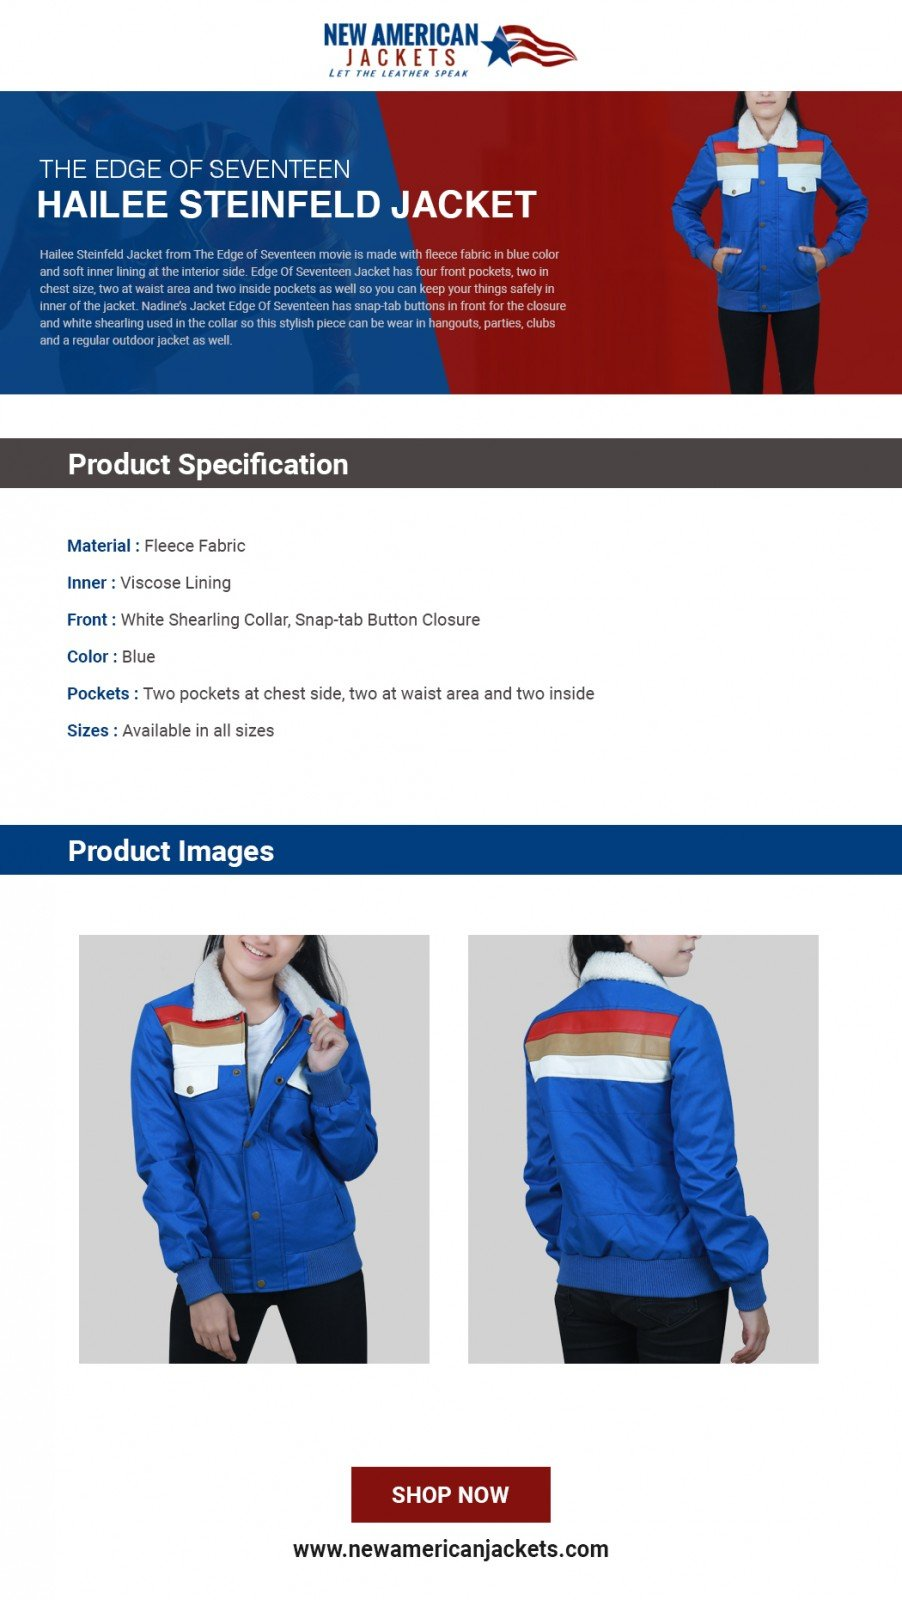 hailee-steinfeld-jacket-from-the-edge-of-seventeen-movie-infographic